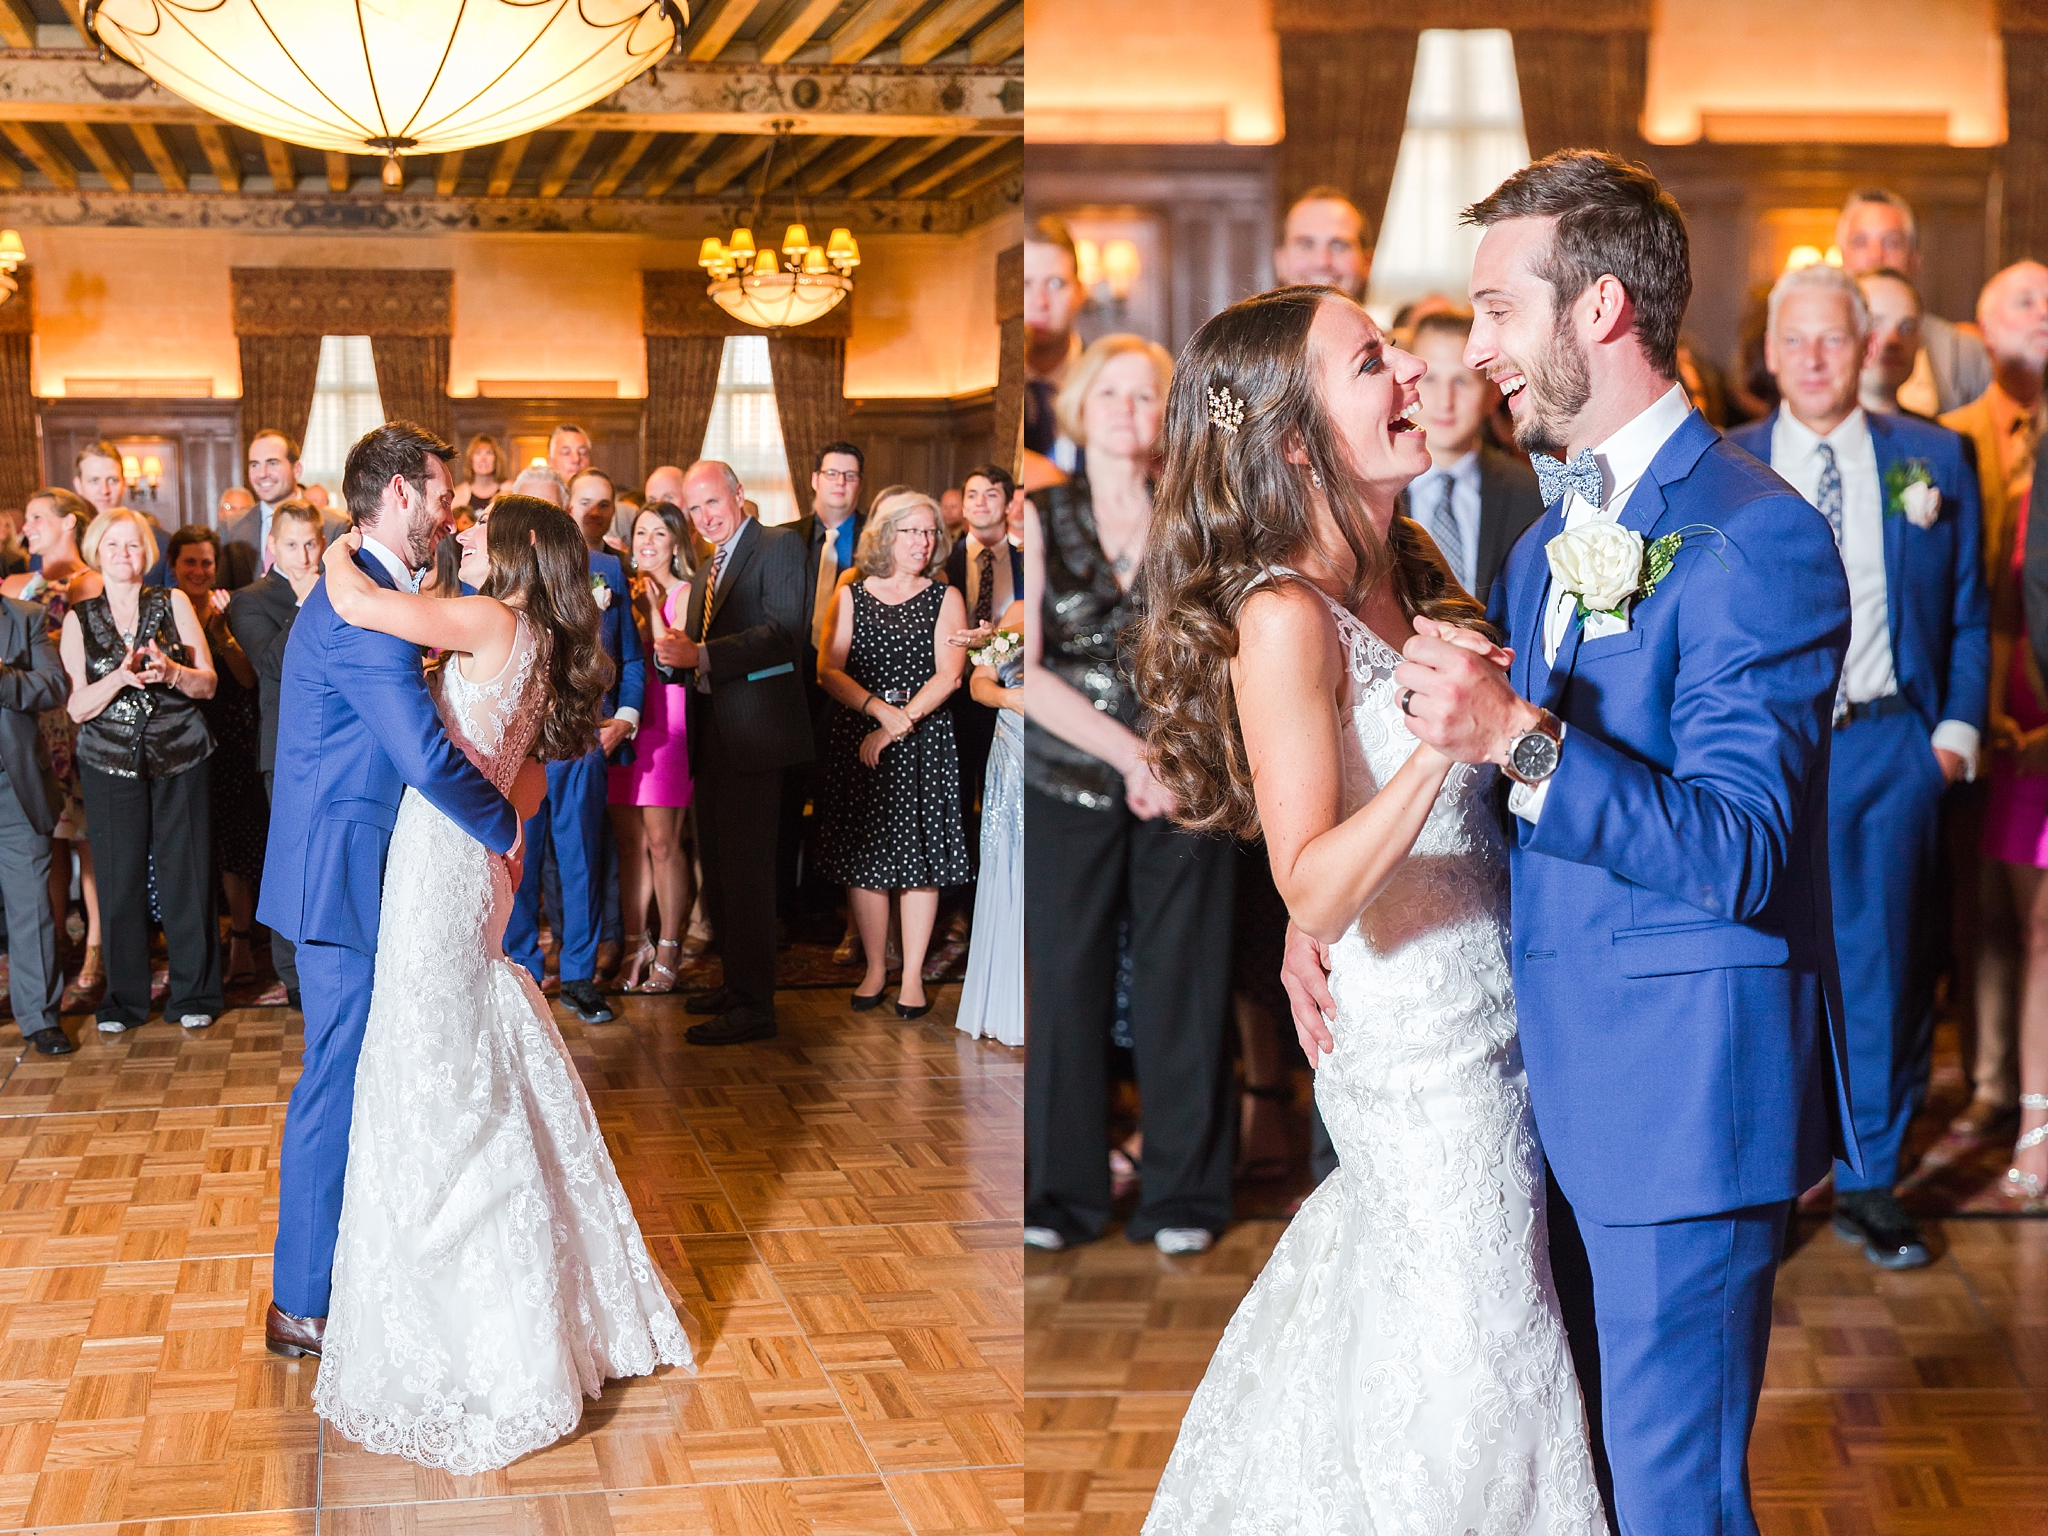 playful-blush-navy-wedding-photos-the-detroit-athletic-club-in-detroit-michigan-by-courtney-carolyn-photography_0066.jpg